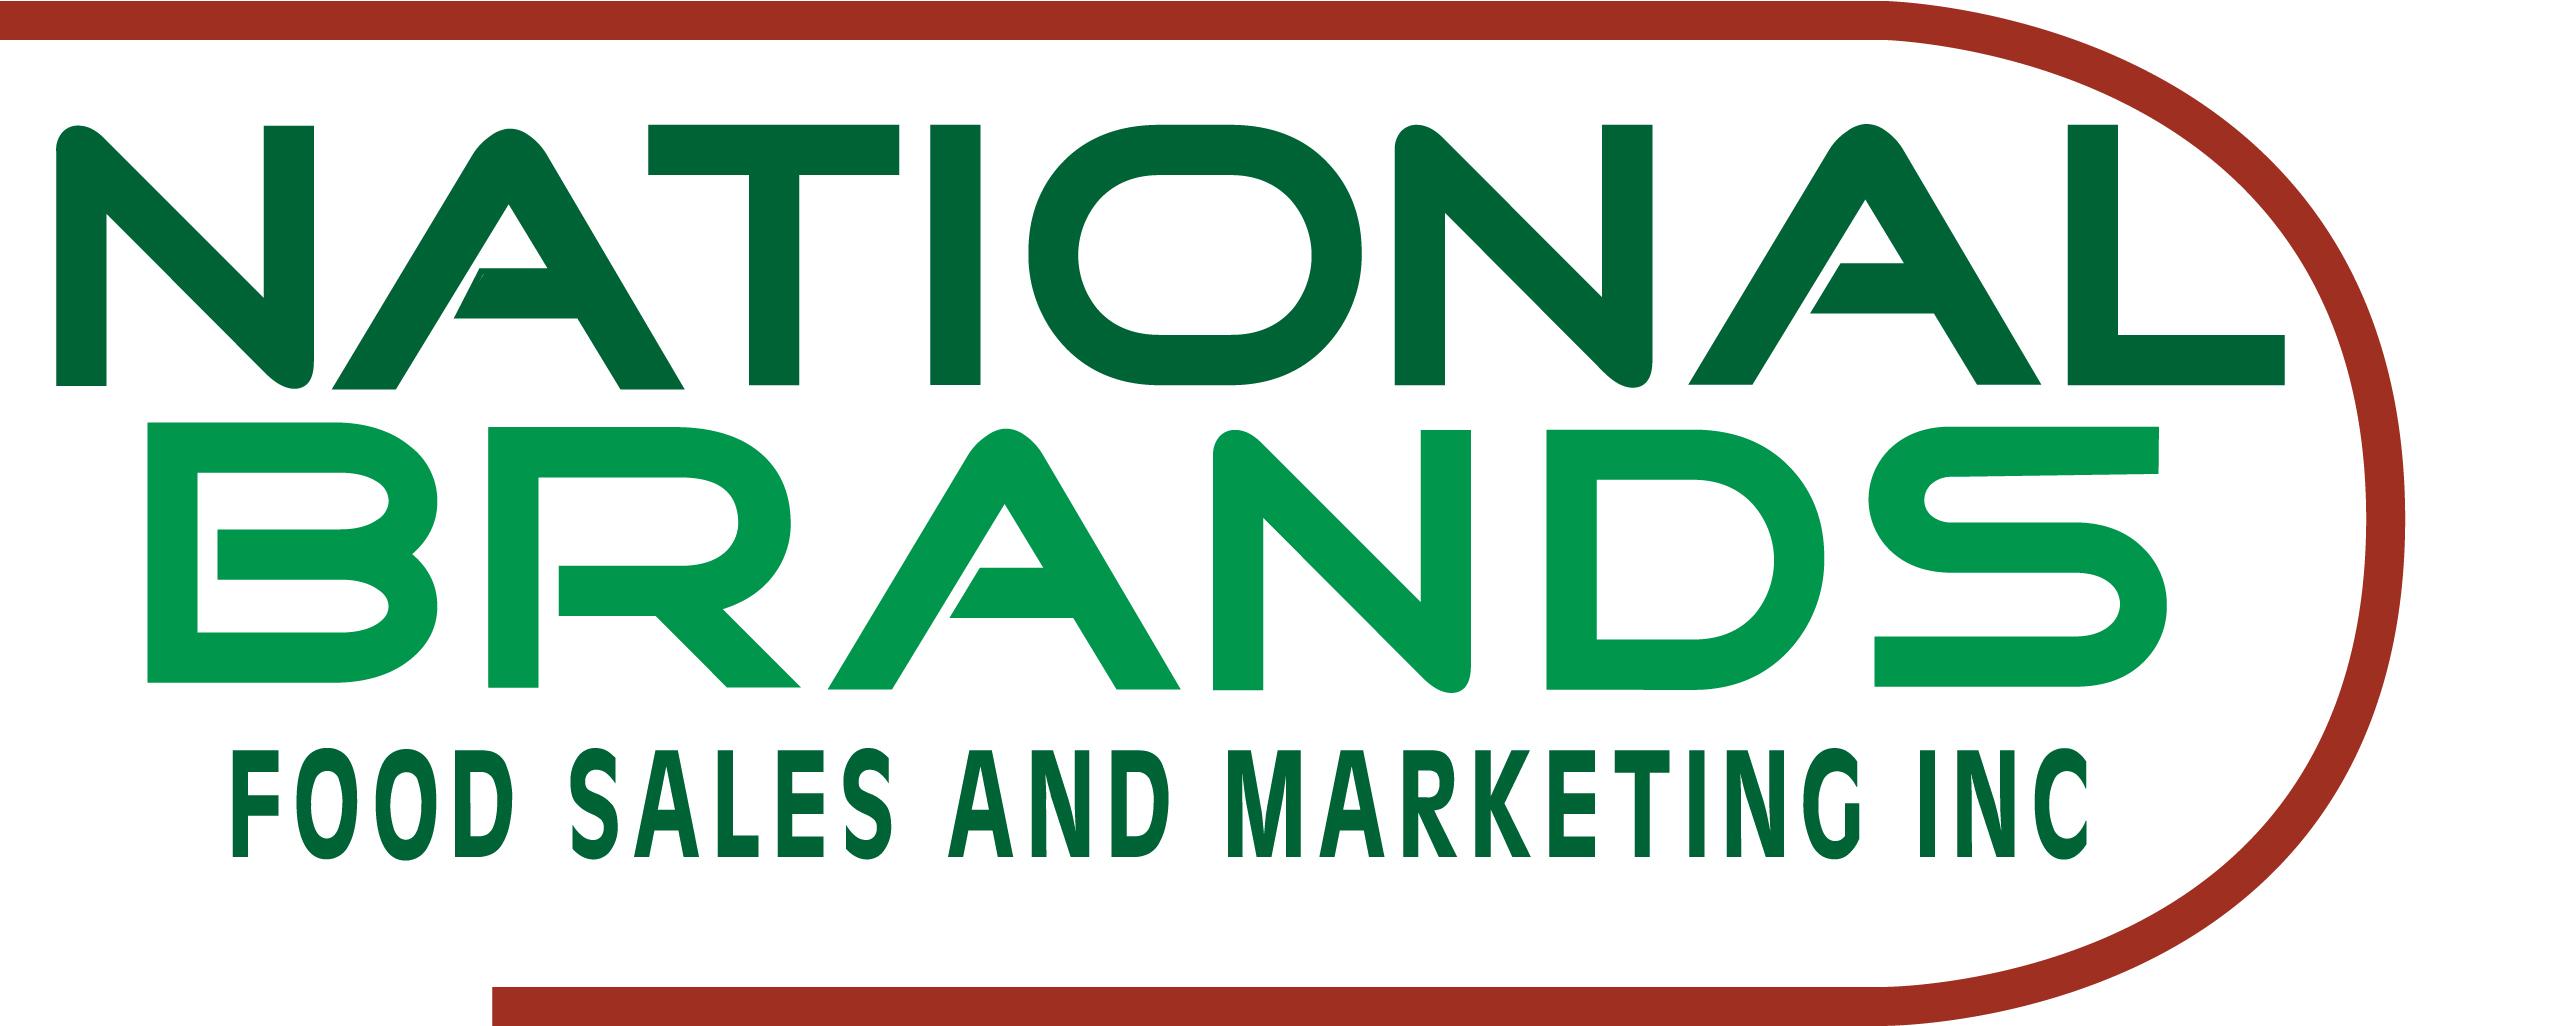 National Brands Inc.